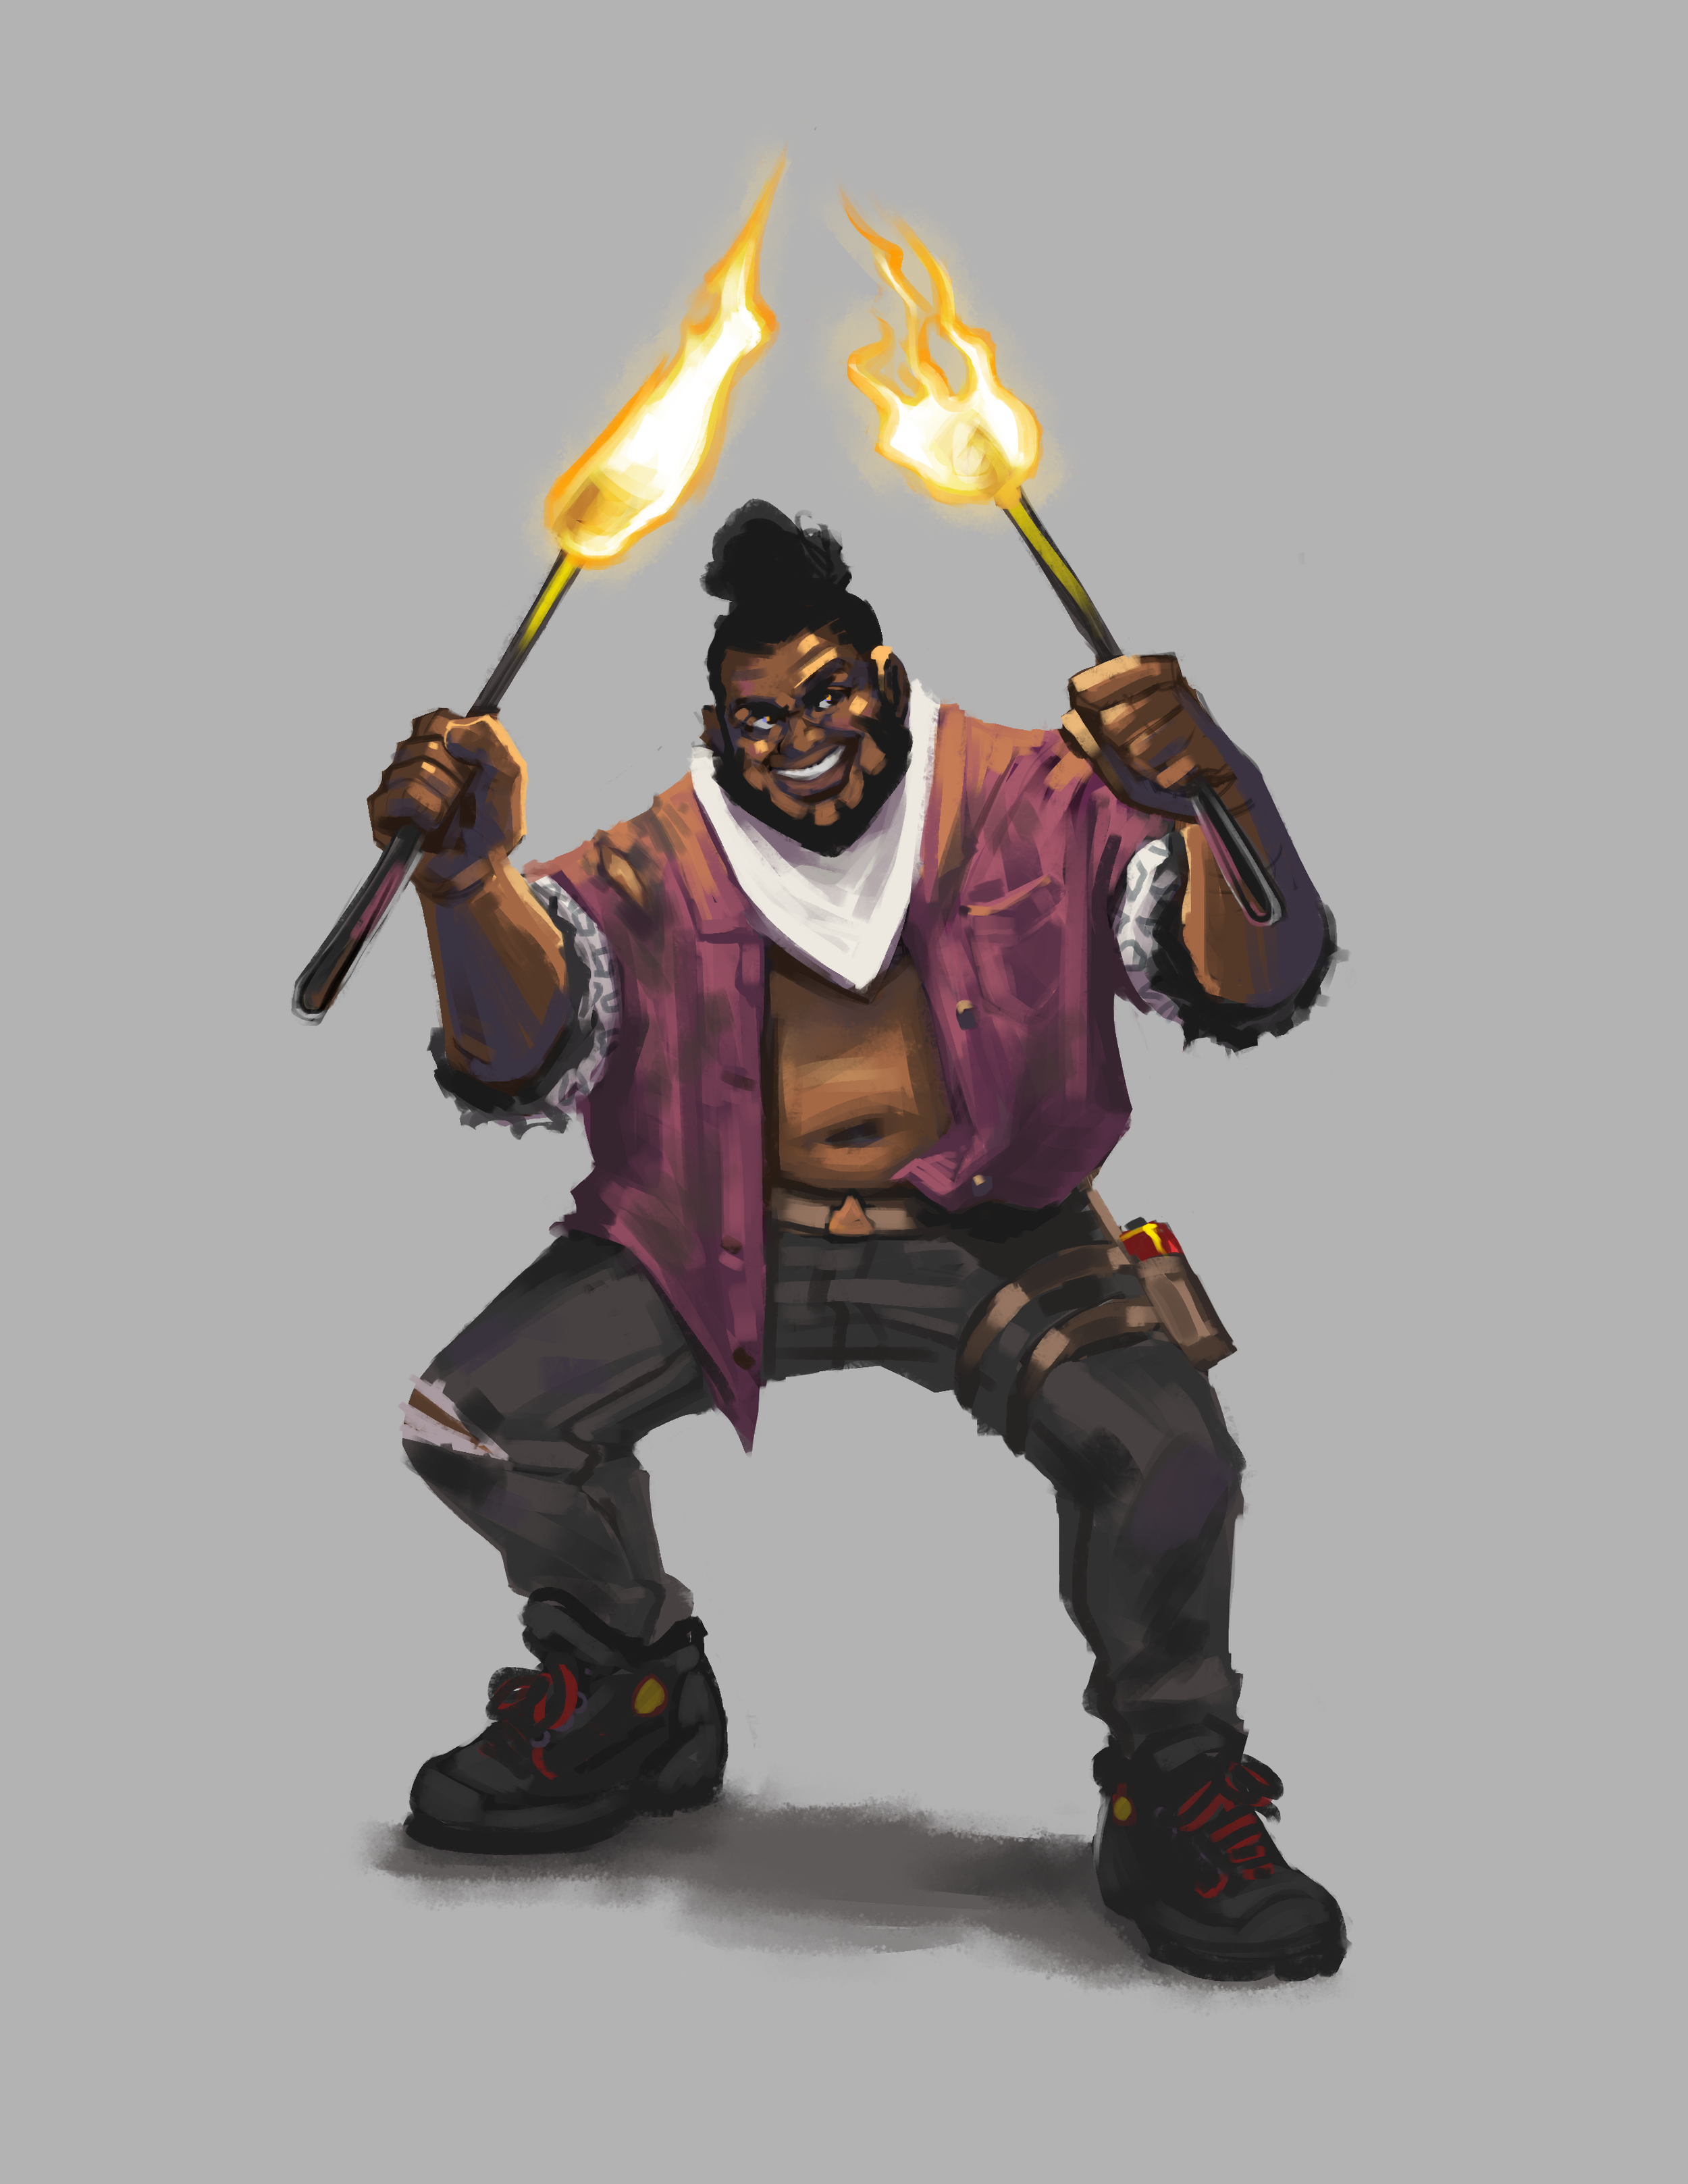 Portfolio_Character_FireEater_02.png